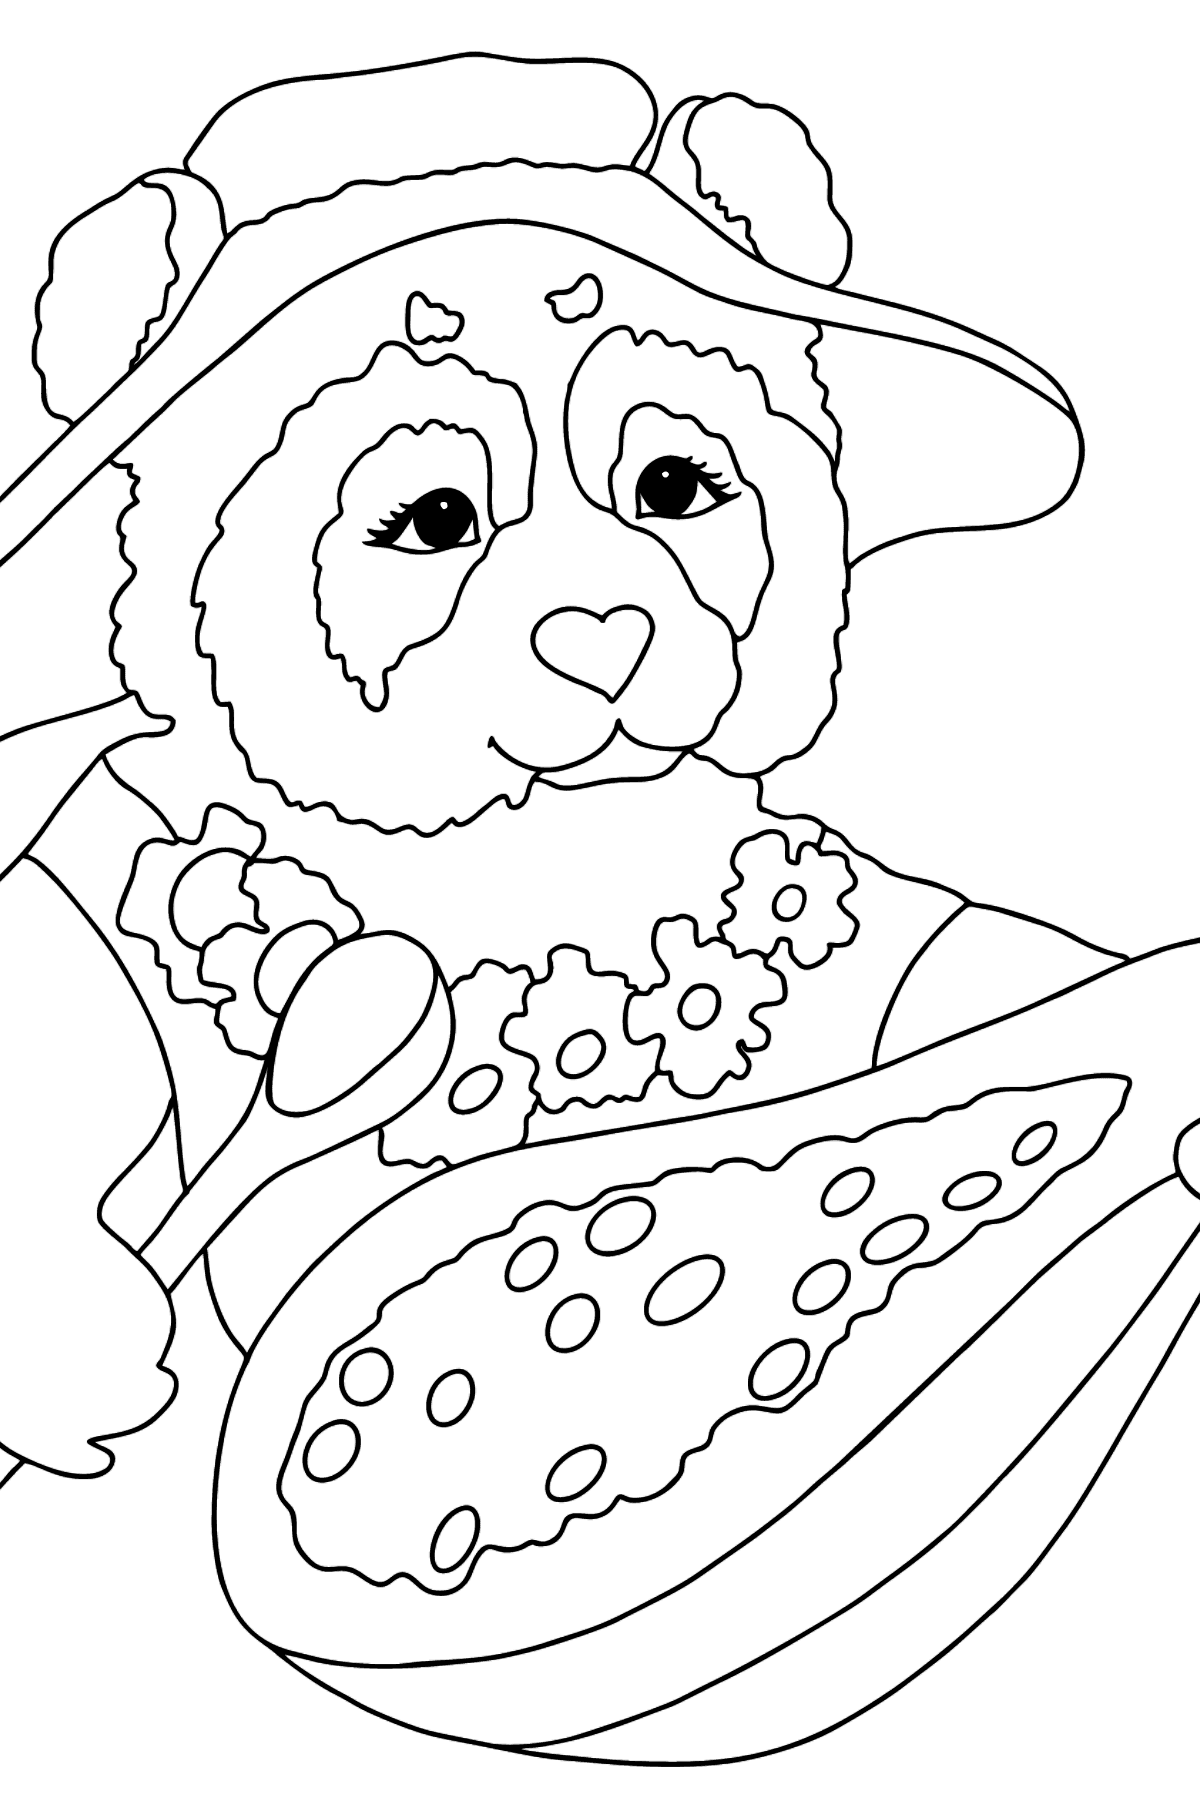 Coloring Page - A Panda is Eating Papaya - Coloring Pages for Kids